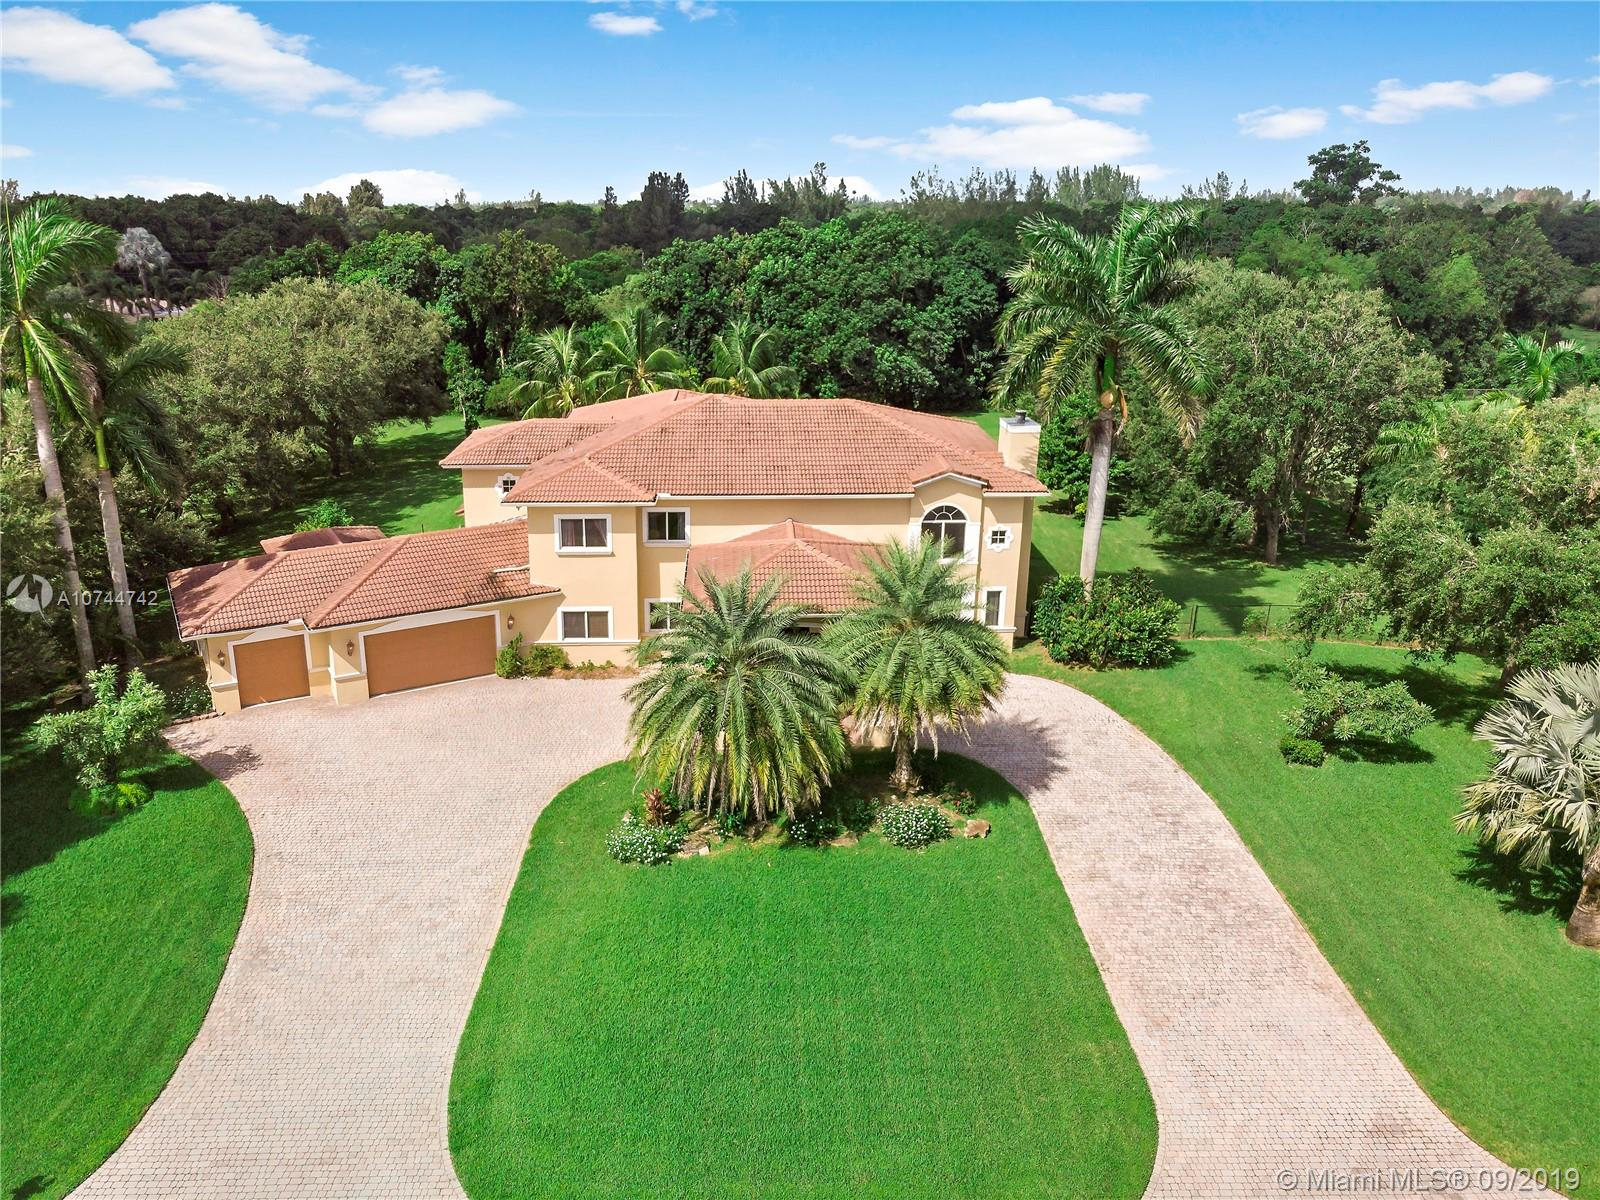 5051 SW 192nd Ter, Southwest Ranches, FL 33332